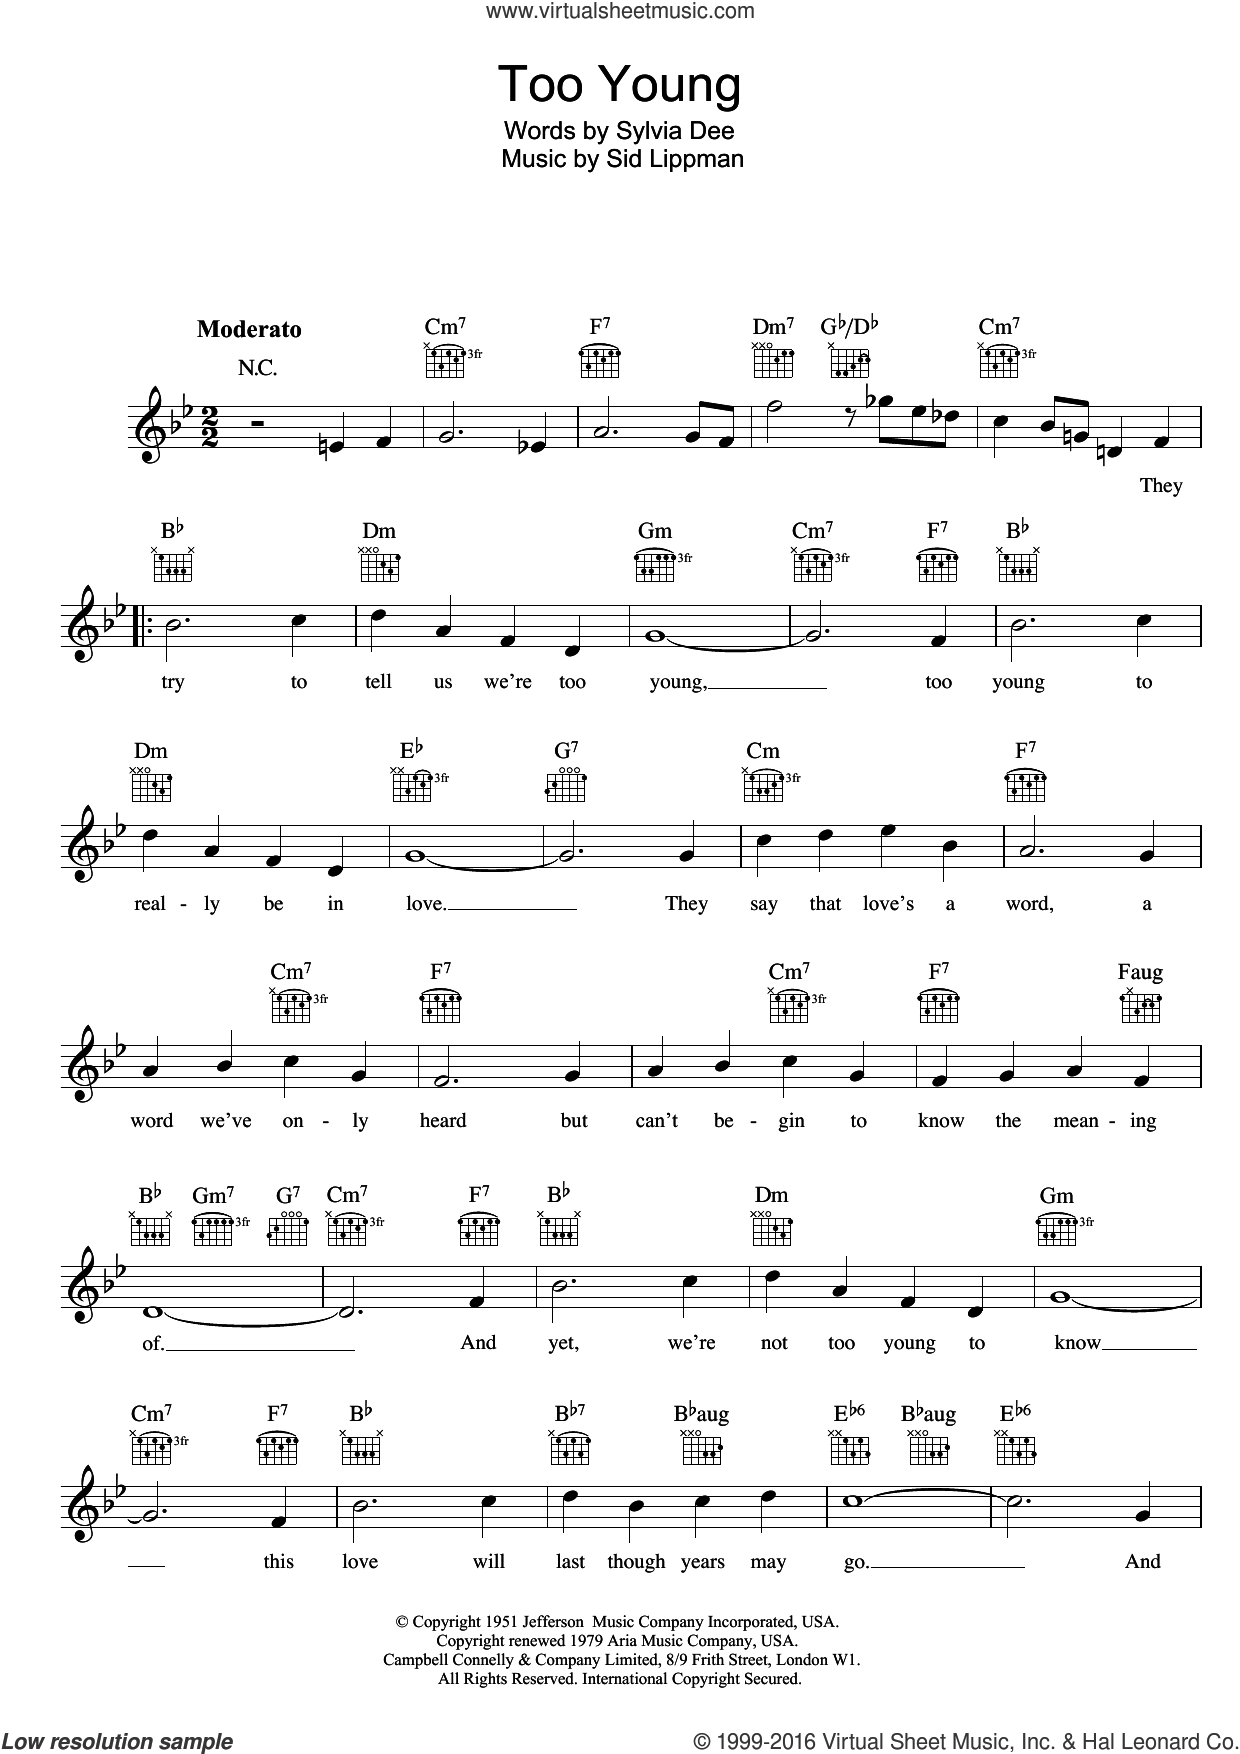 Too Young sheet music for voice and other instruments (fake book) by Nat King Cole, Sidney Lippman and Sylvia Dee, intermediate skill level